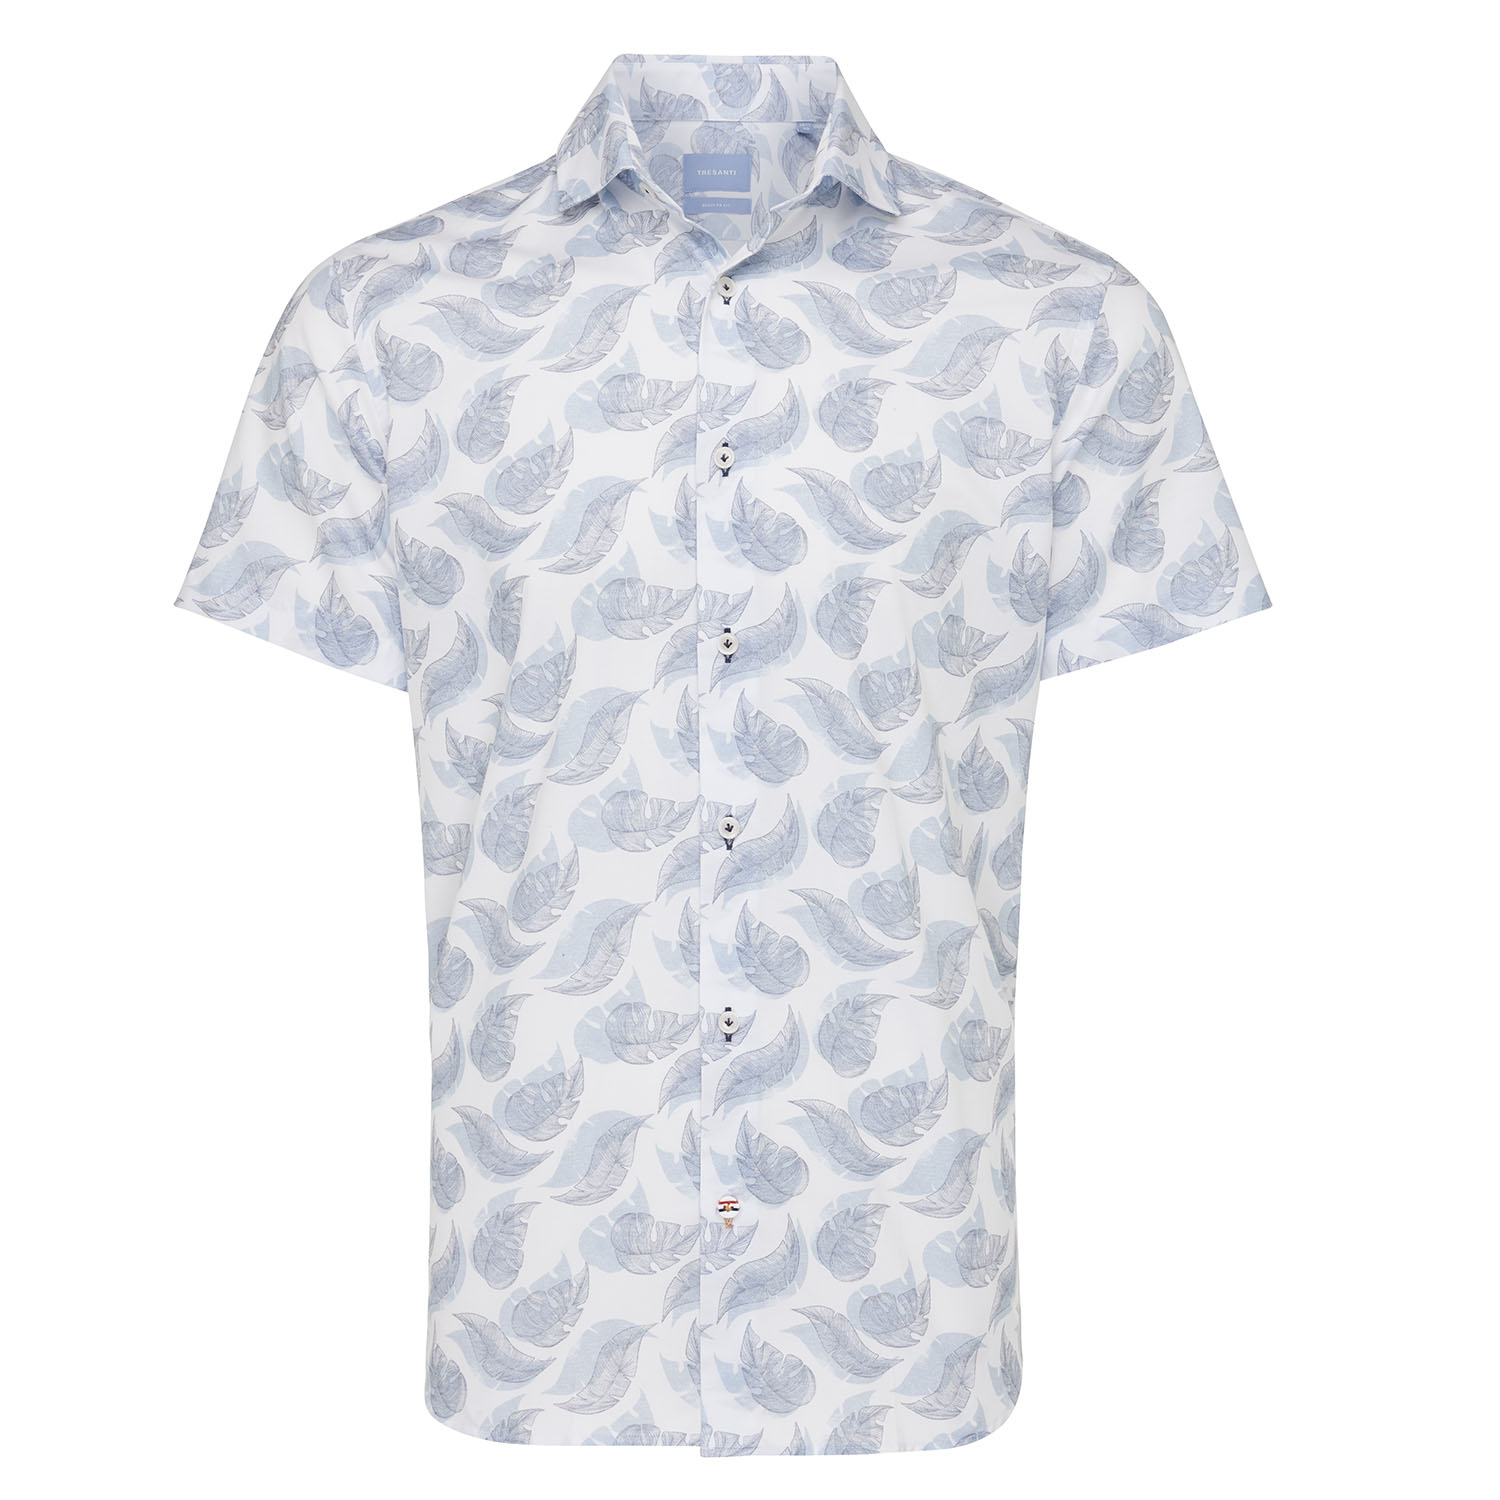 Morriz | Shirt leaves print blue